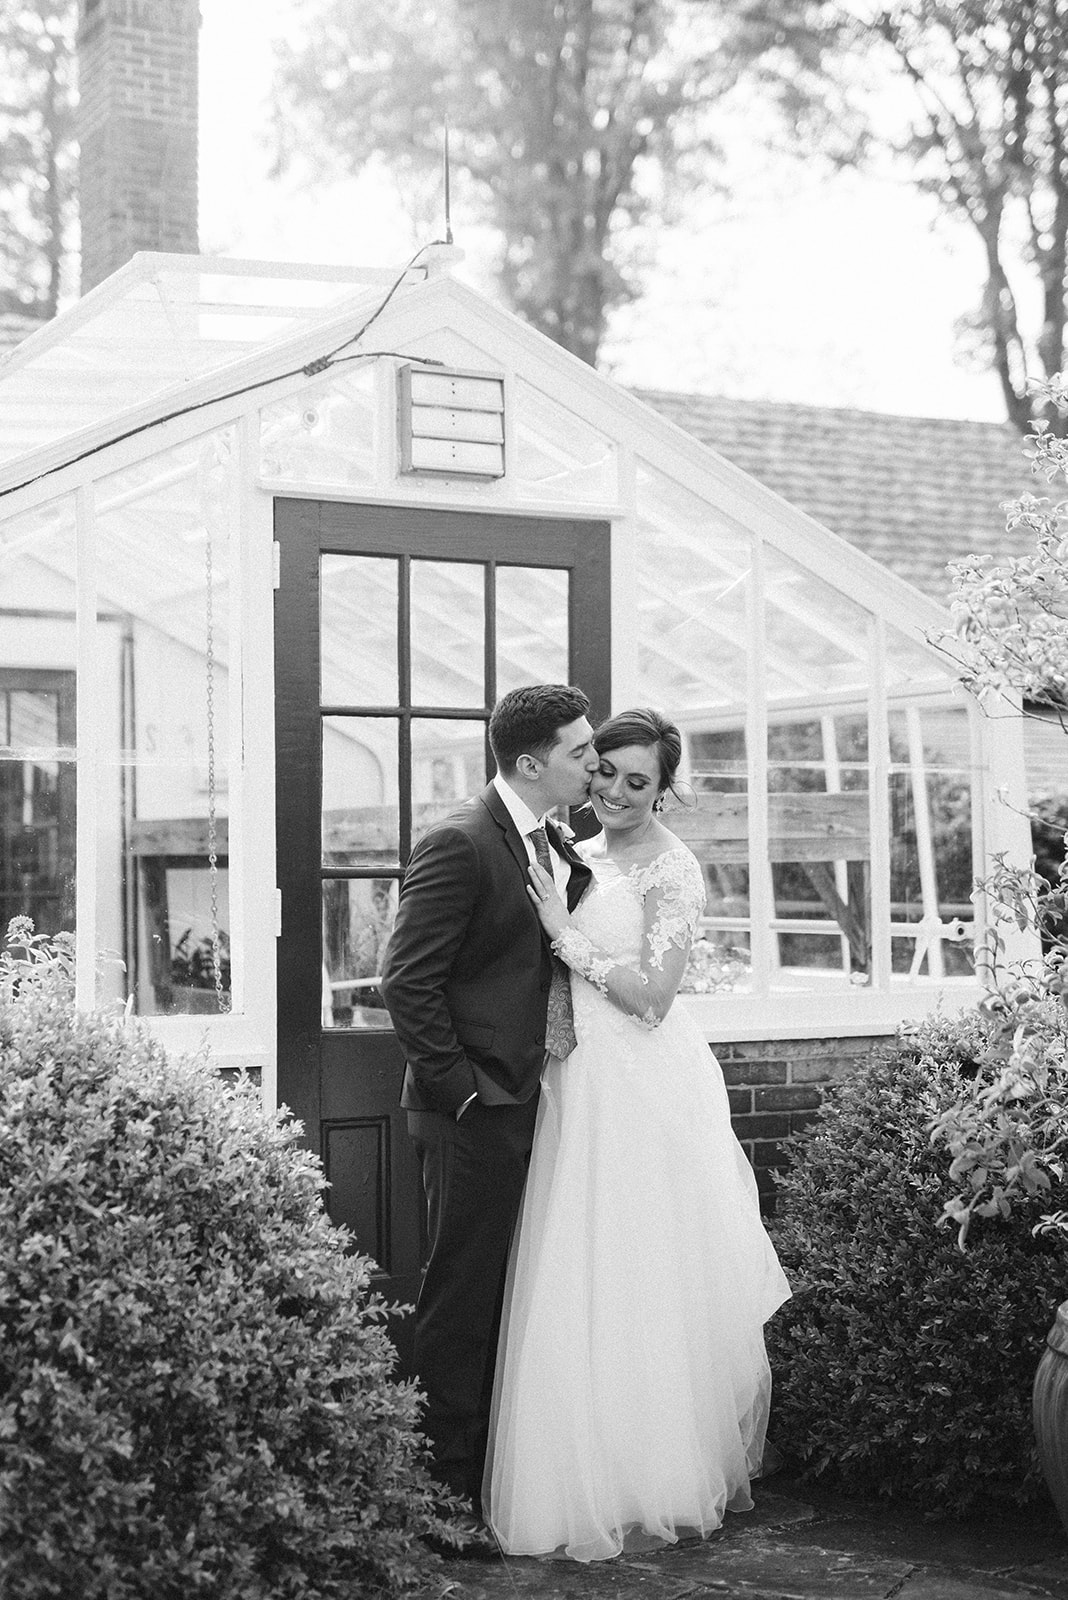 Drumore Estate wedding venue has a greenhouse structure that is perfect for portraits!